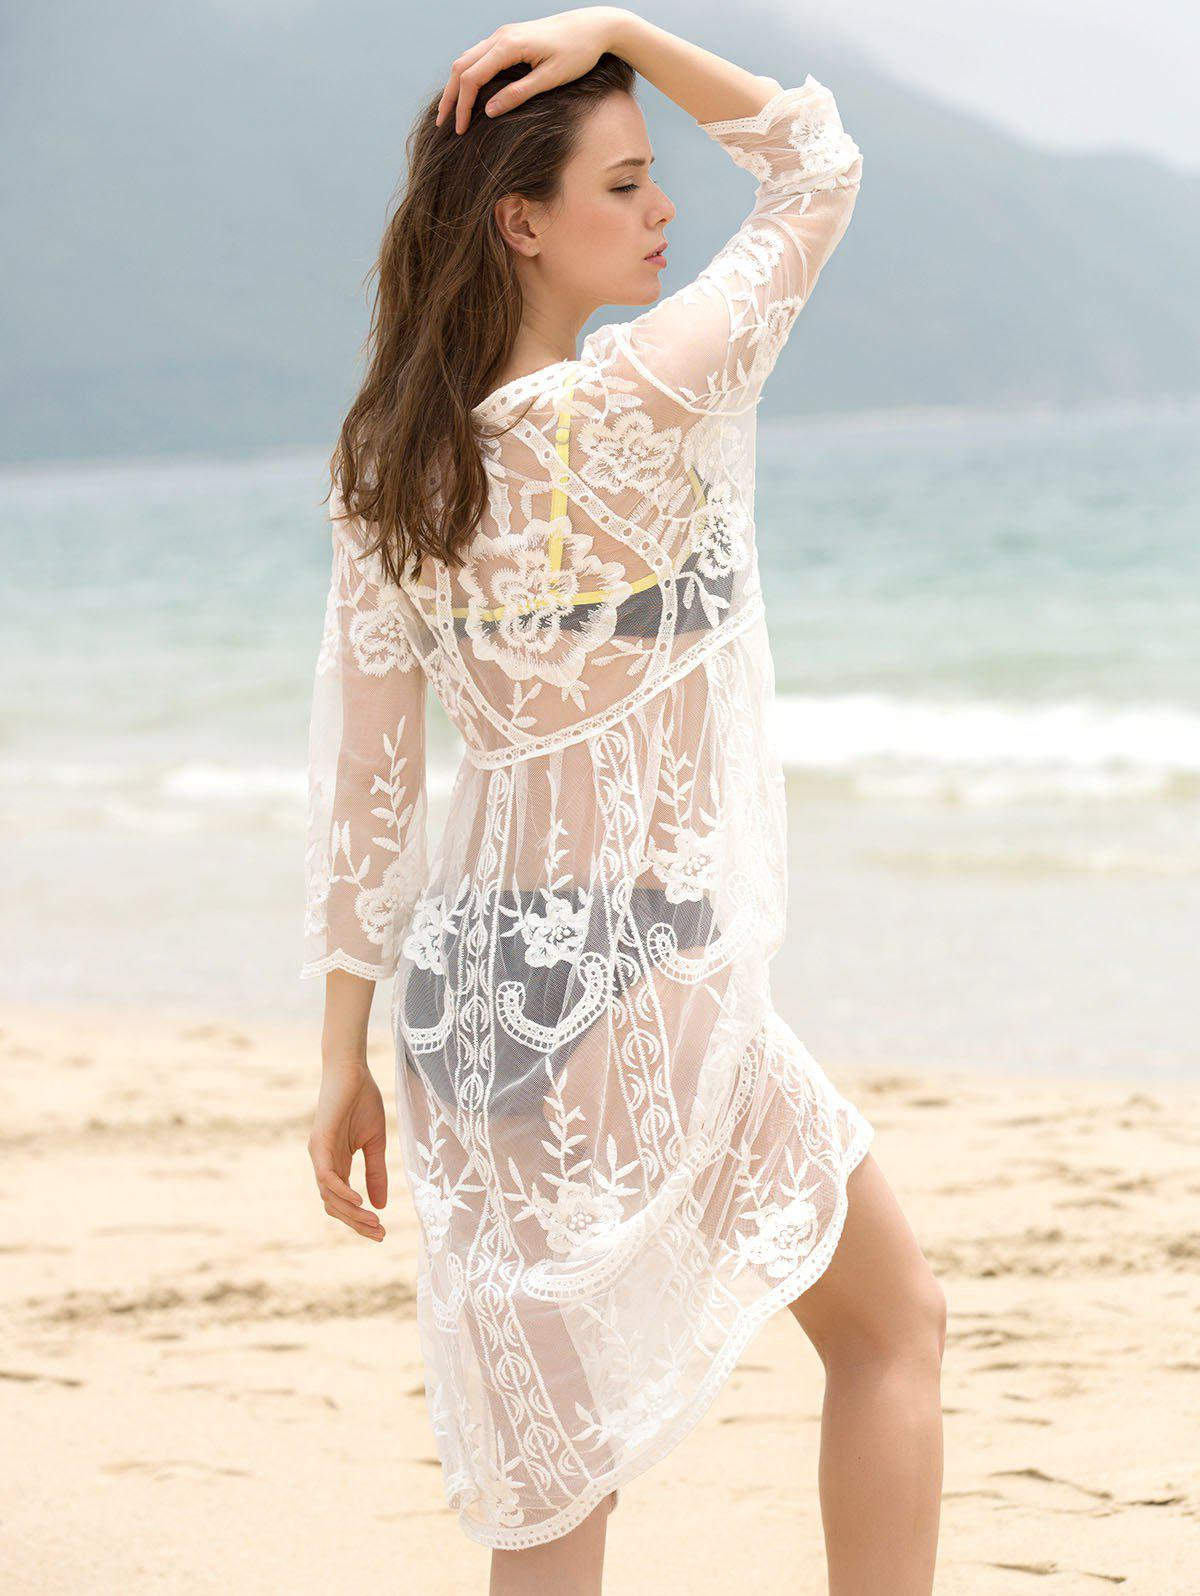 Trendy 3/4 Sleeve Round Collar Solid Color See-Through Women's Cover-Up - WHITE ONE SIZE(FIT SIZE XS TO M)